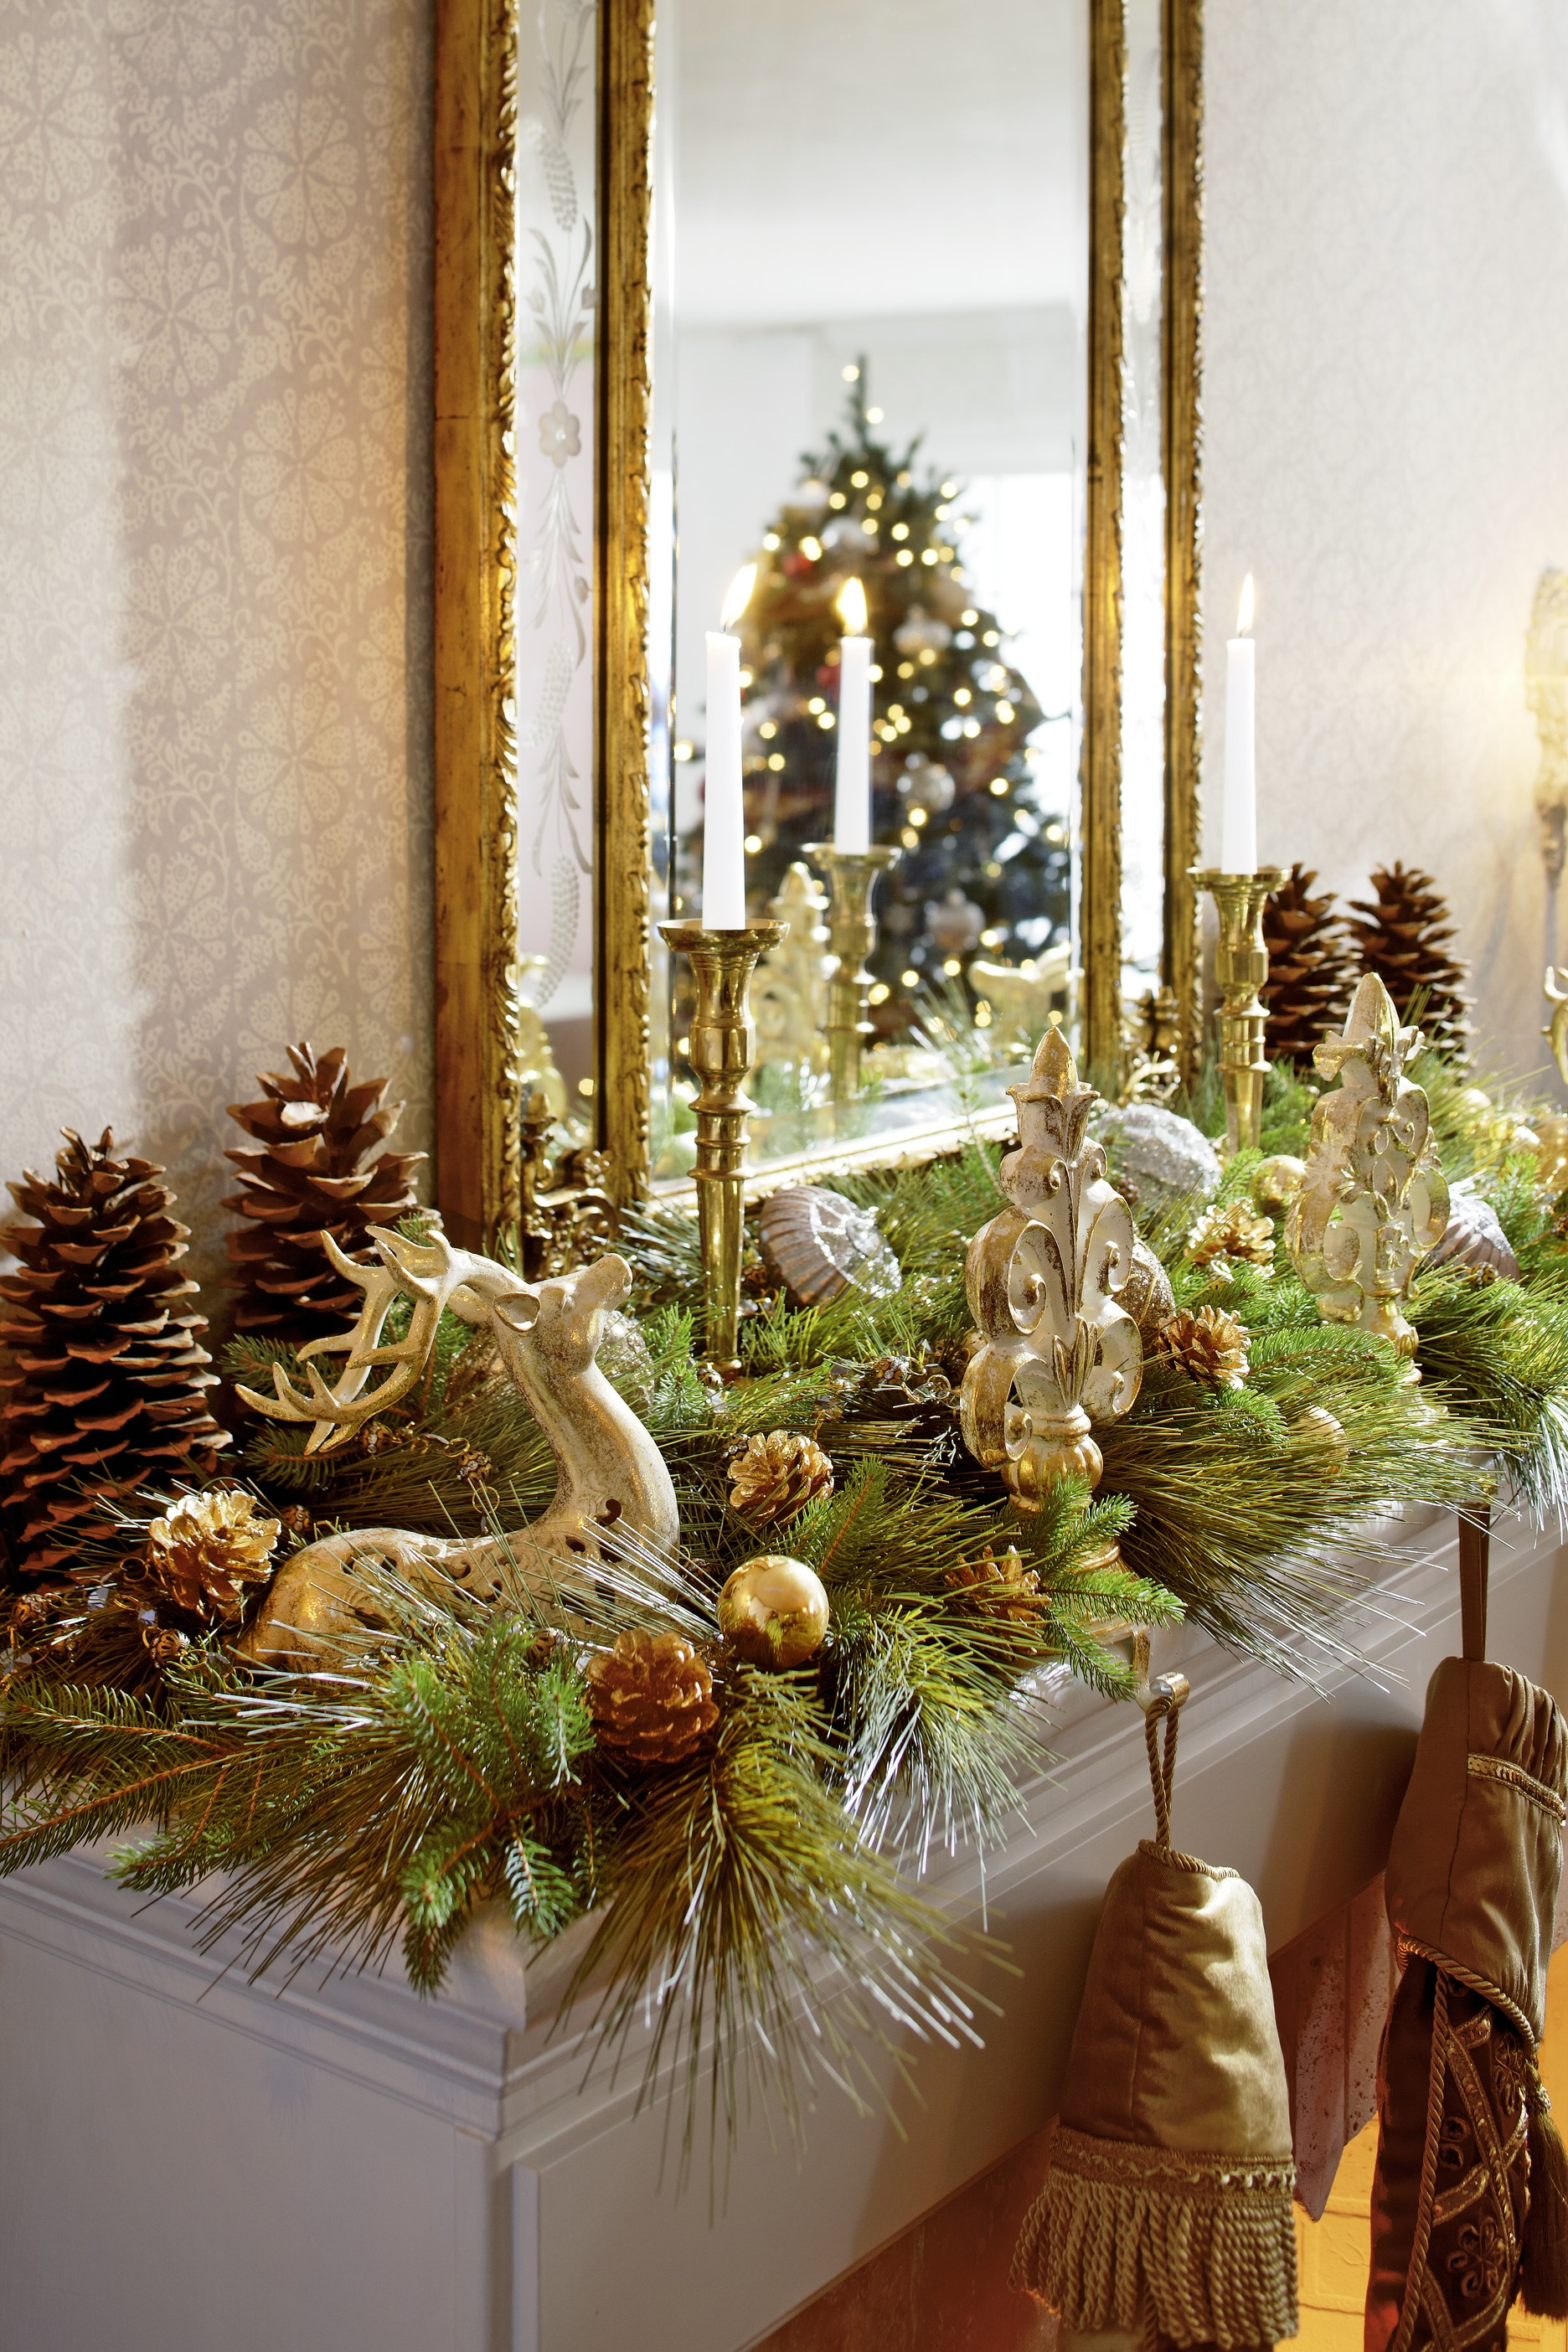 Home Christmas Decorations decorating: holiday mantels | traditional home